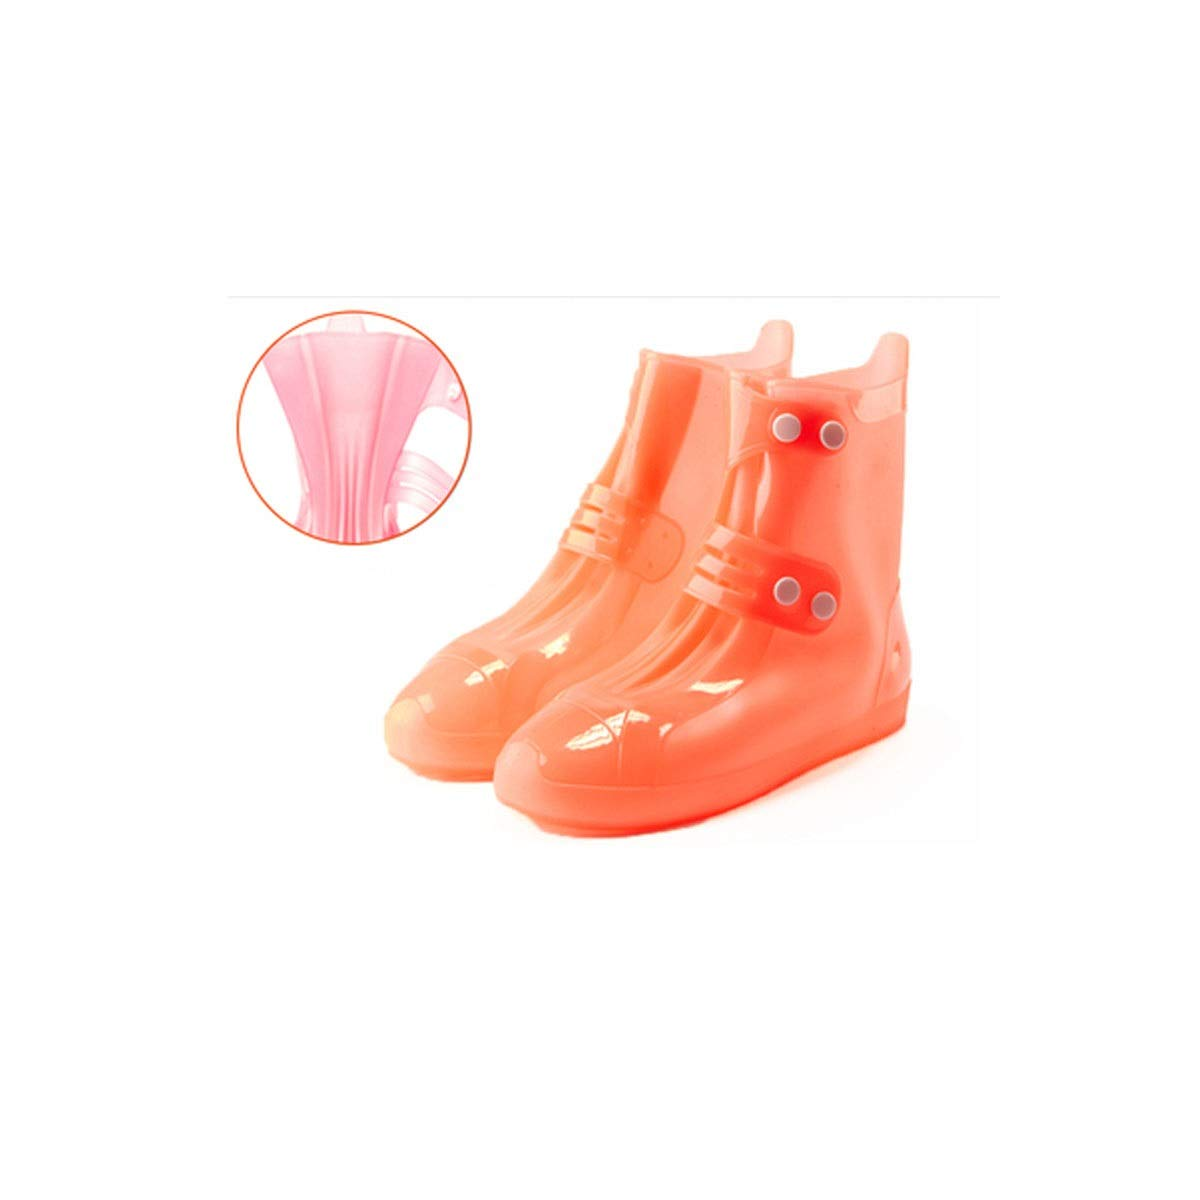 WUHUIZHENJINGXIAOBU Rainproof Shoe Cover, High-tube Outer Rubber Outdoor Motorcycle Raining Men And Women Non-slip Foot Cover, A Variety Of Colors Available Shoe covers that can be worn on rainy days, by WUHUIZHENJINGXIAOBU